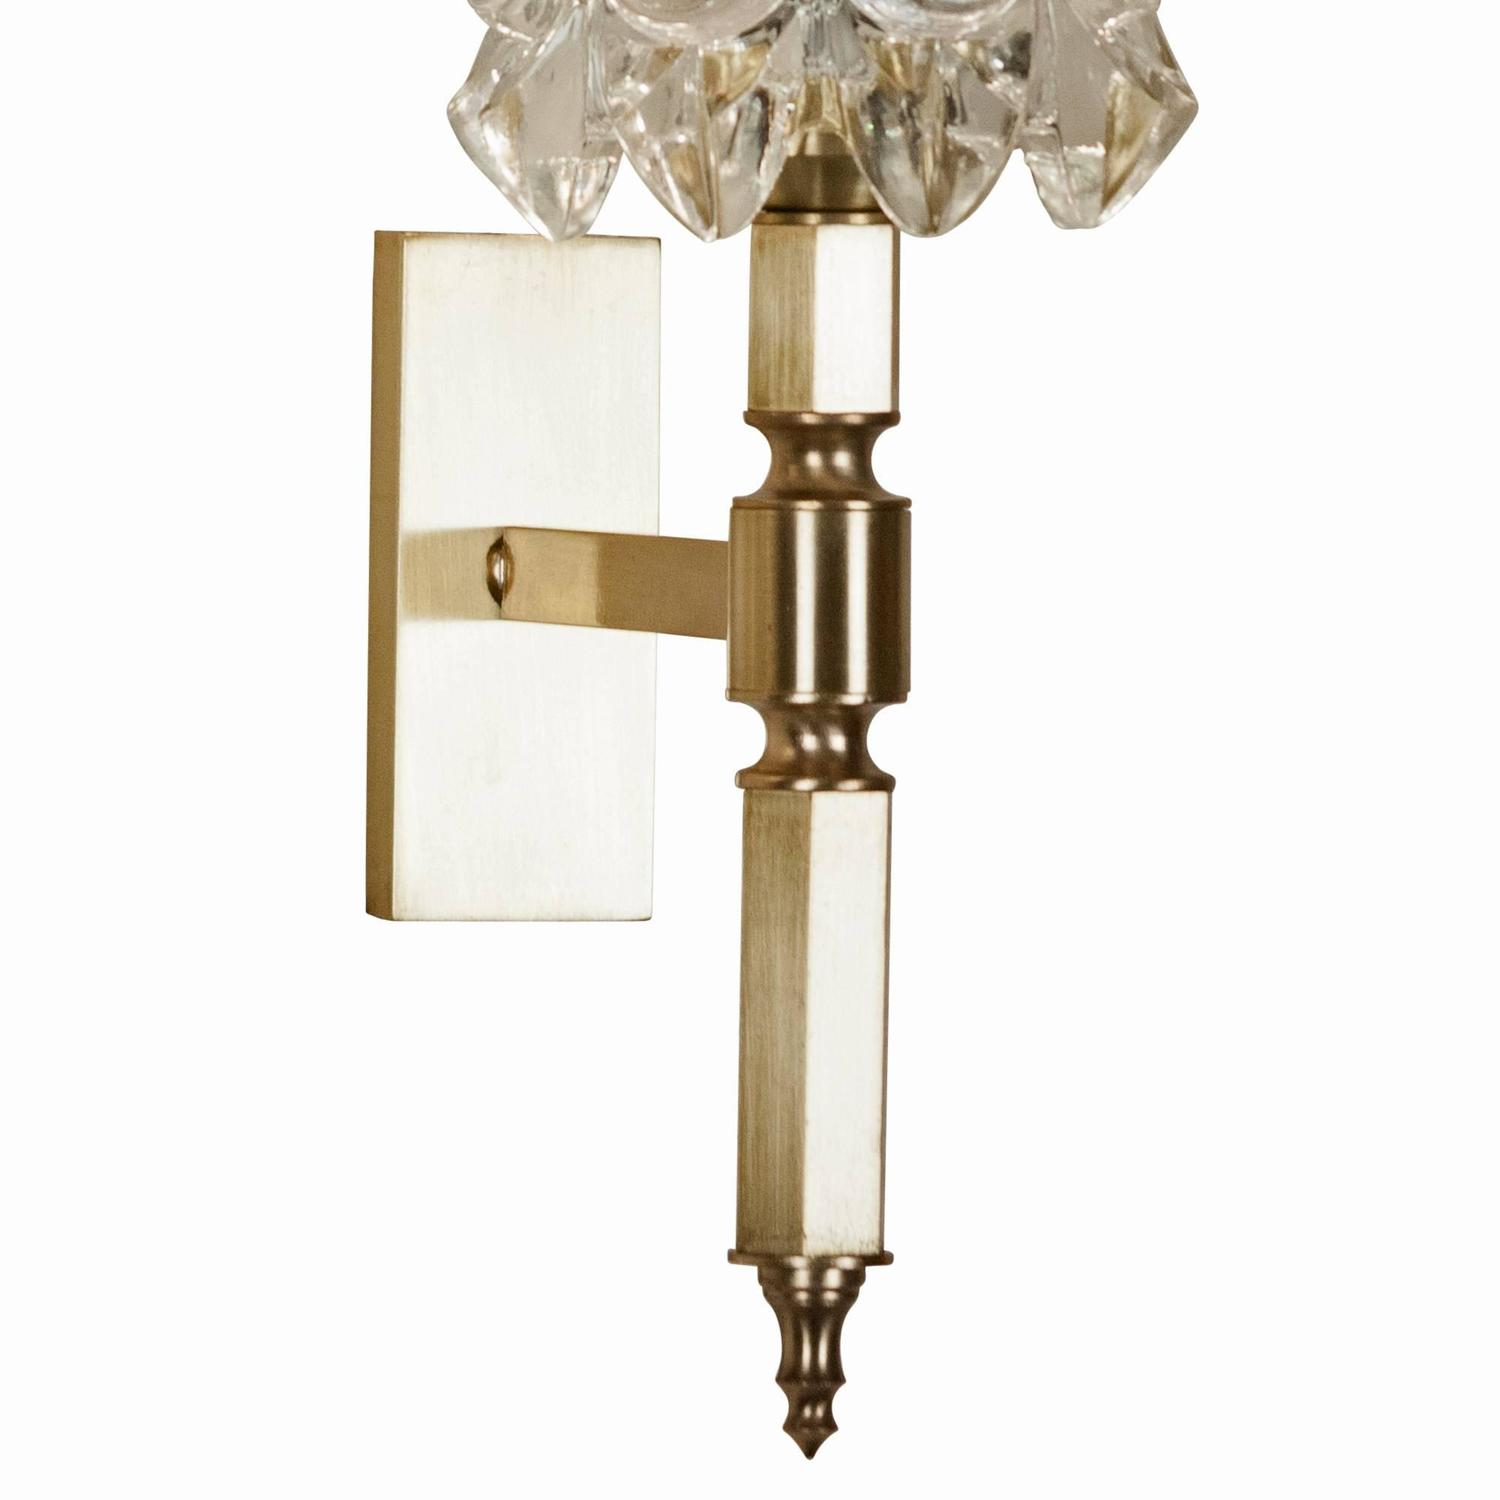 Italian Made Wall Sconces : Pair of Faceted Crystal Wall Sconces, Italian 1960s at 1stdibs